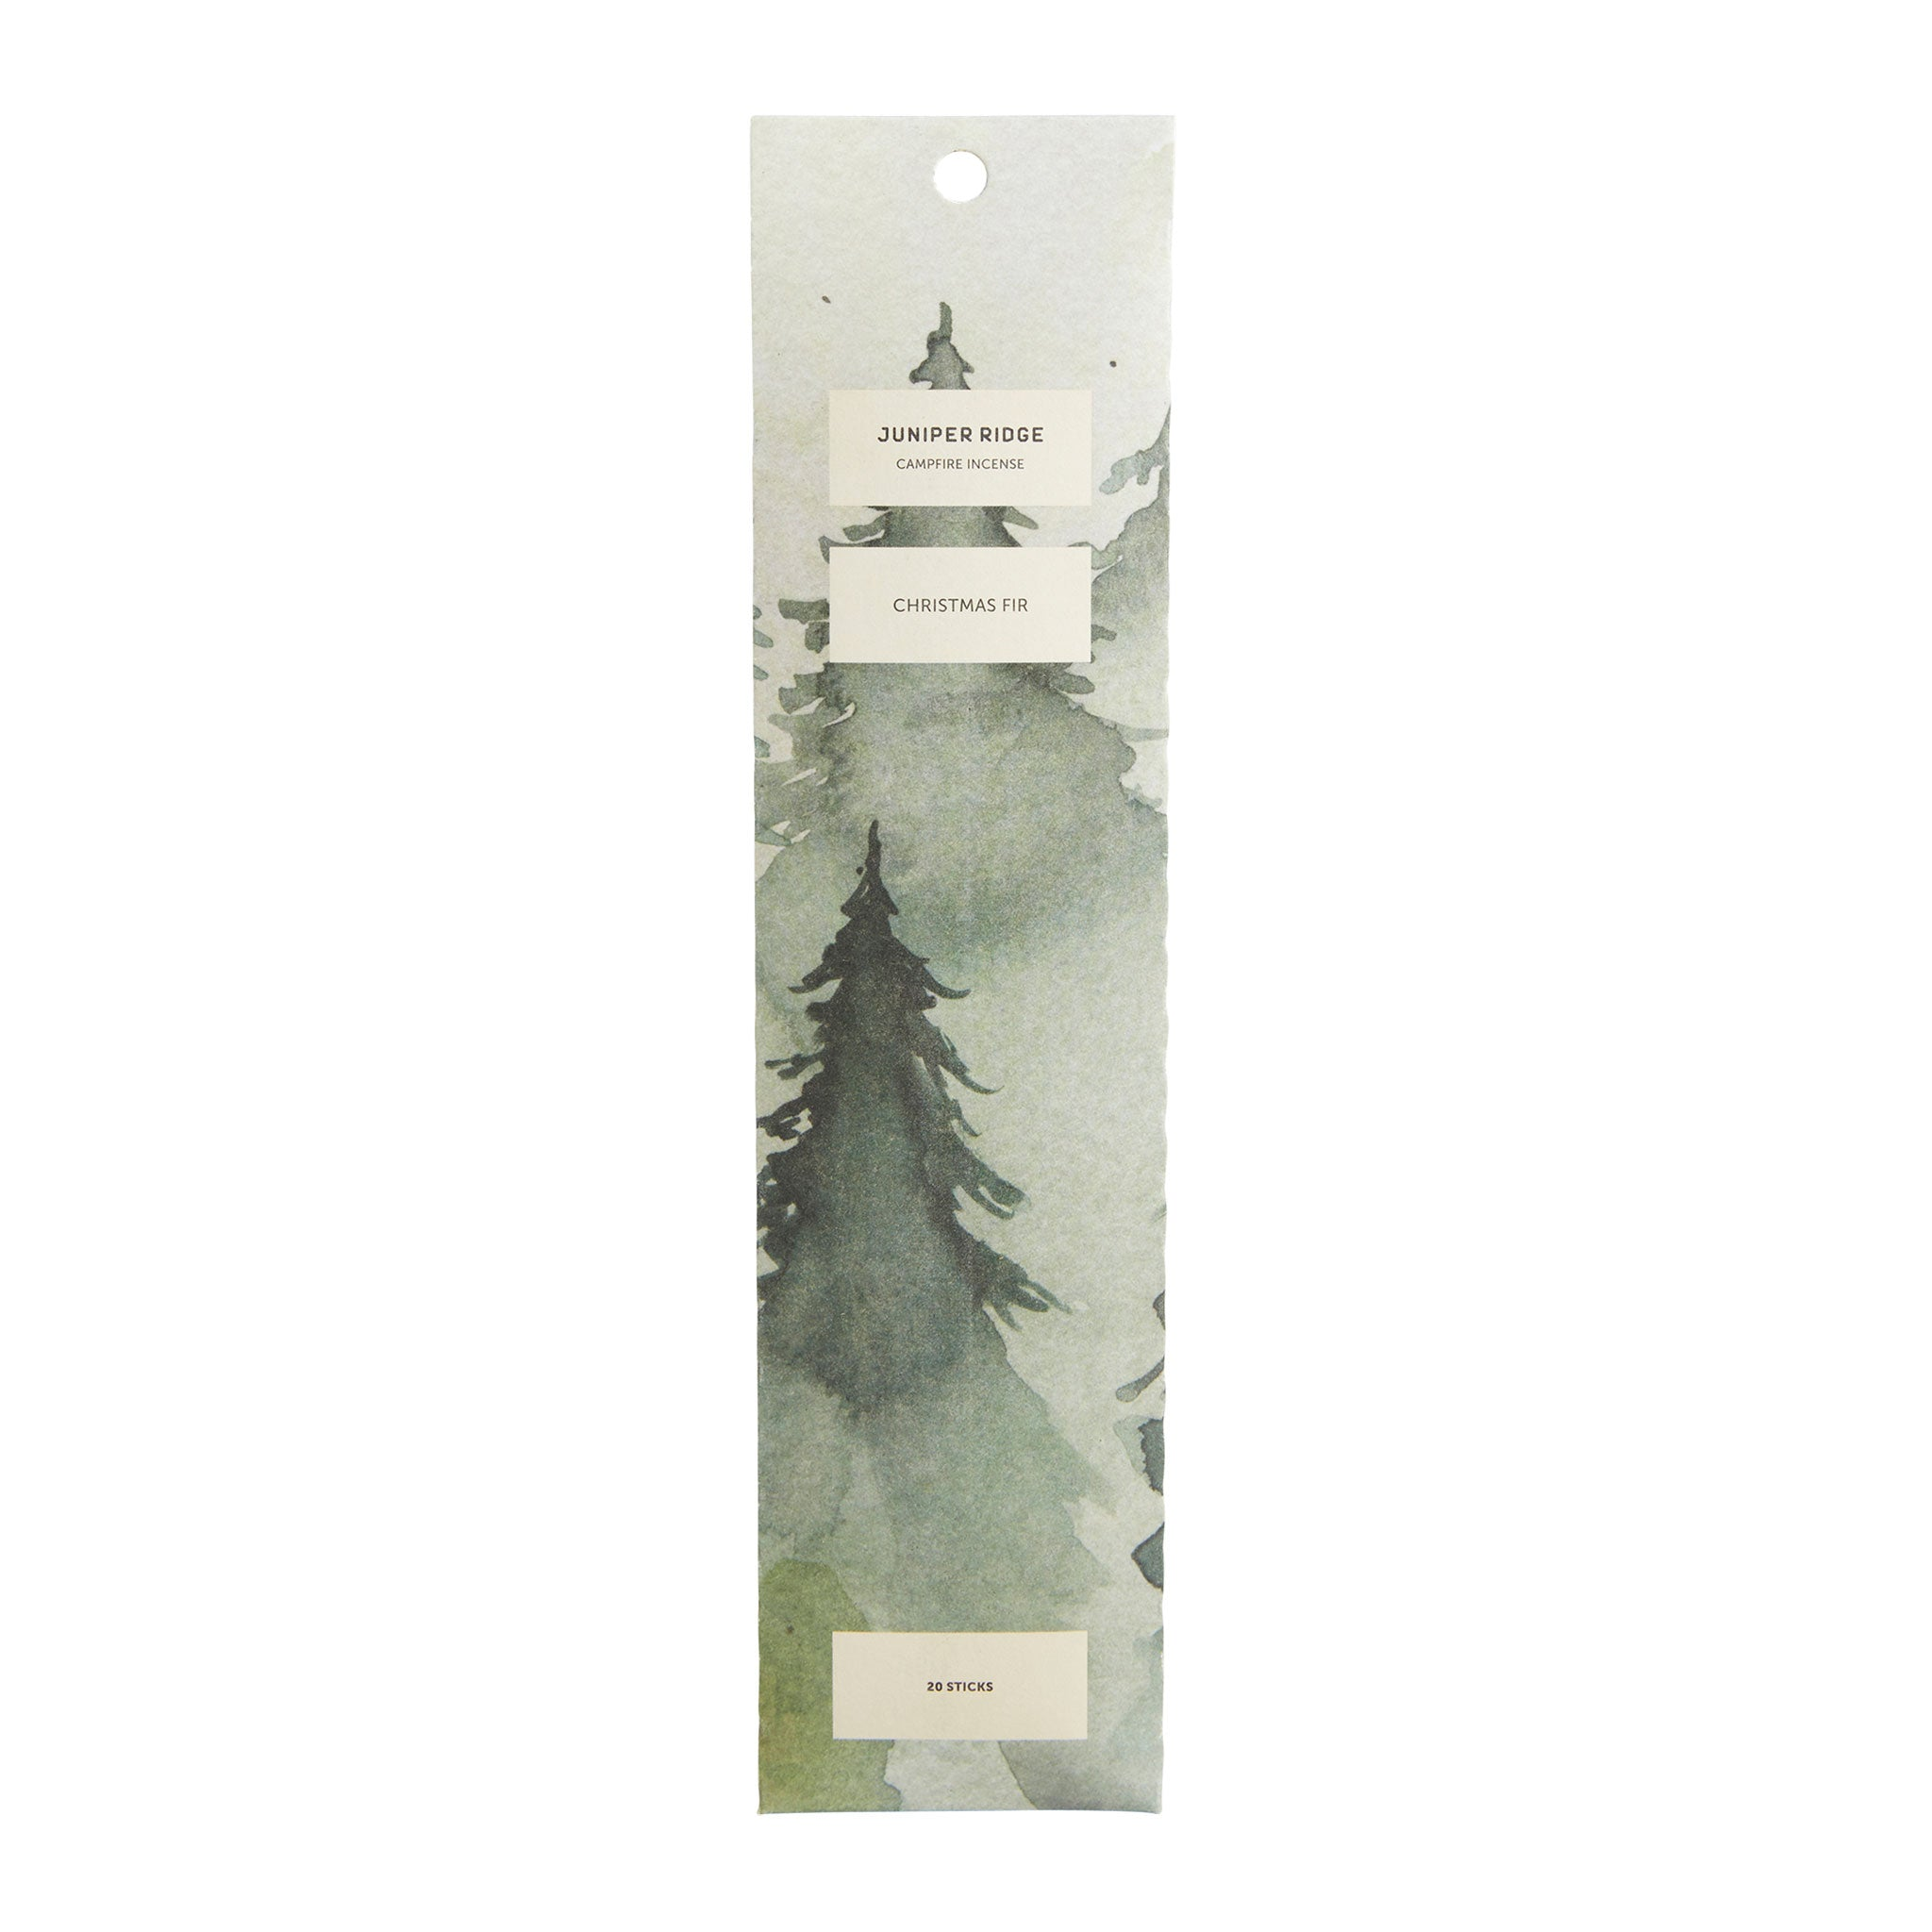 Wanderlust Life featuring sustainably sourced skincare and homeware brand Juniper Ridge. 20 Incense sticks made with pure plant resin, bamboo sticks and no artificial ingredients. The perfect gift for Christmas.